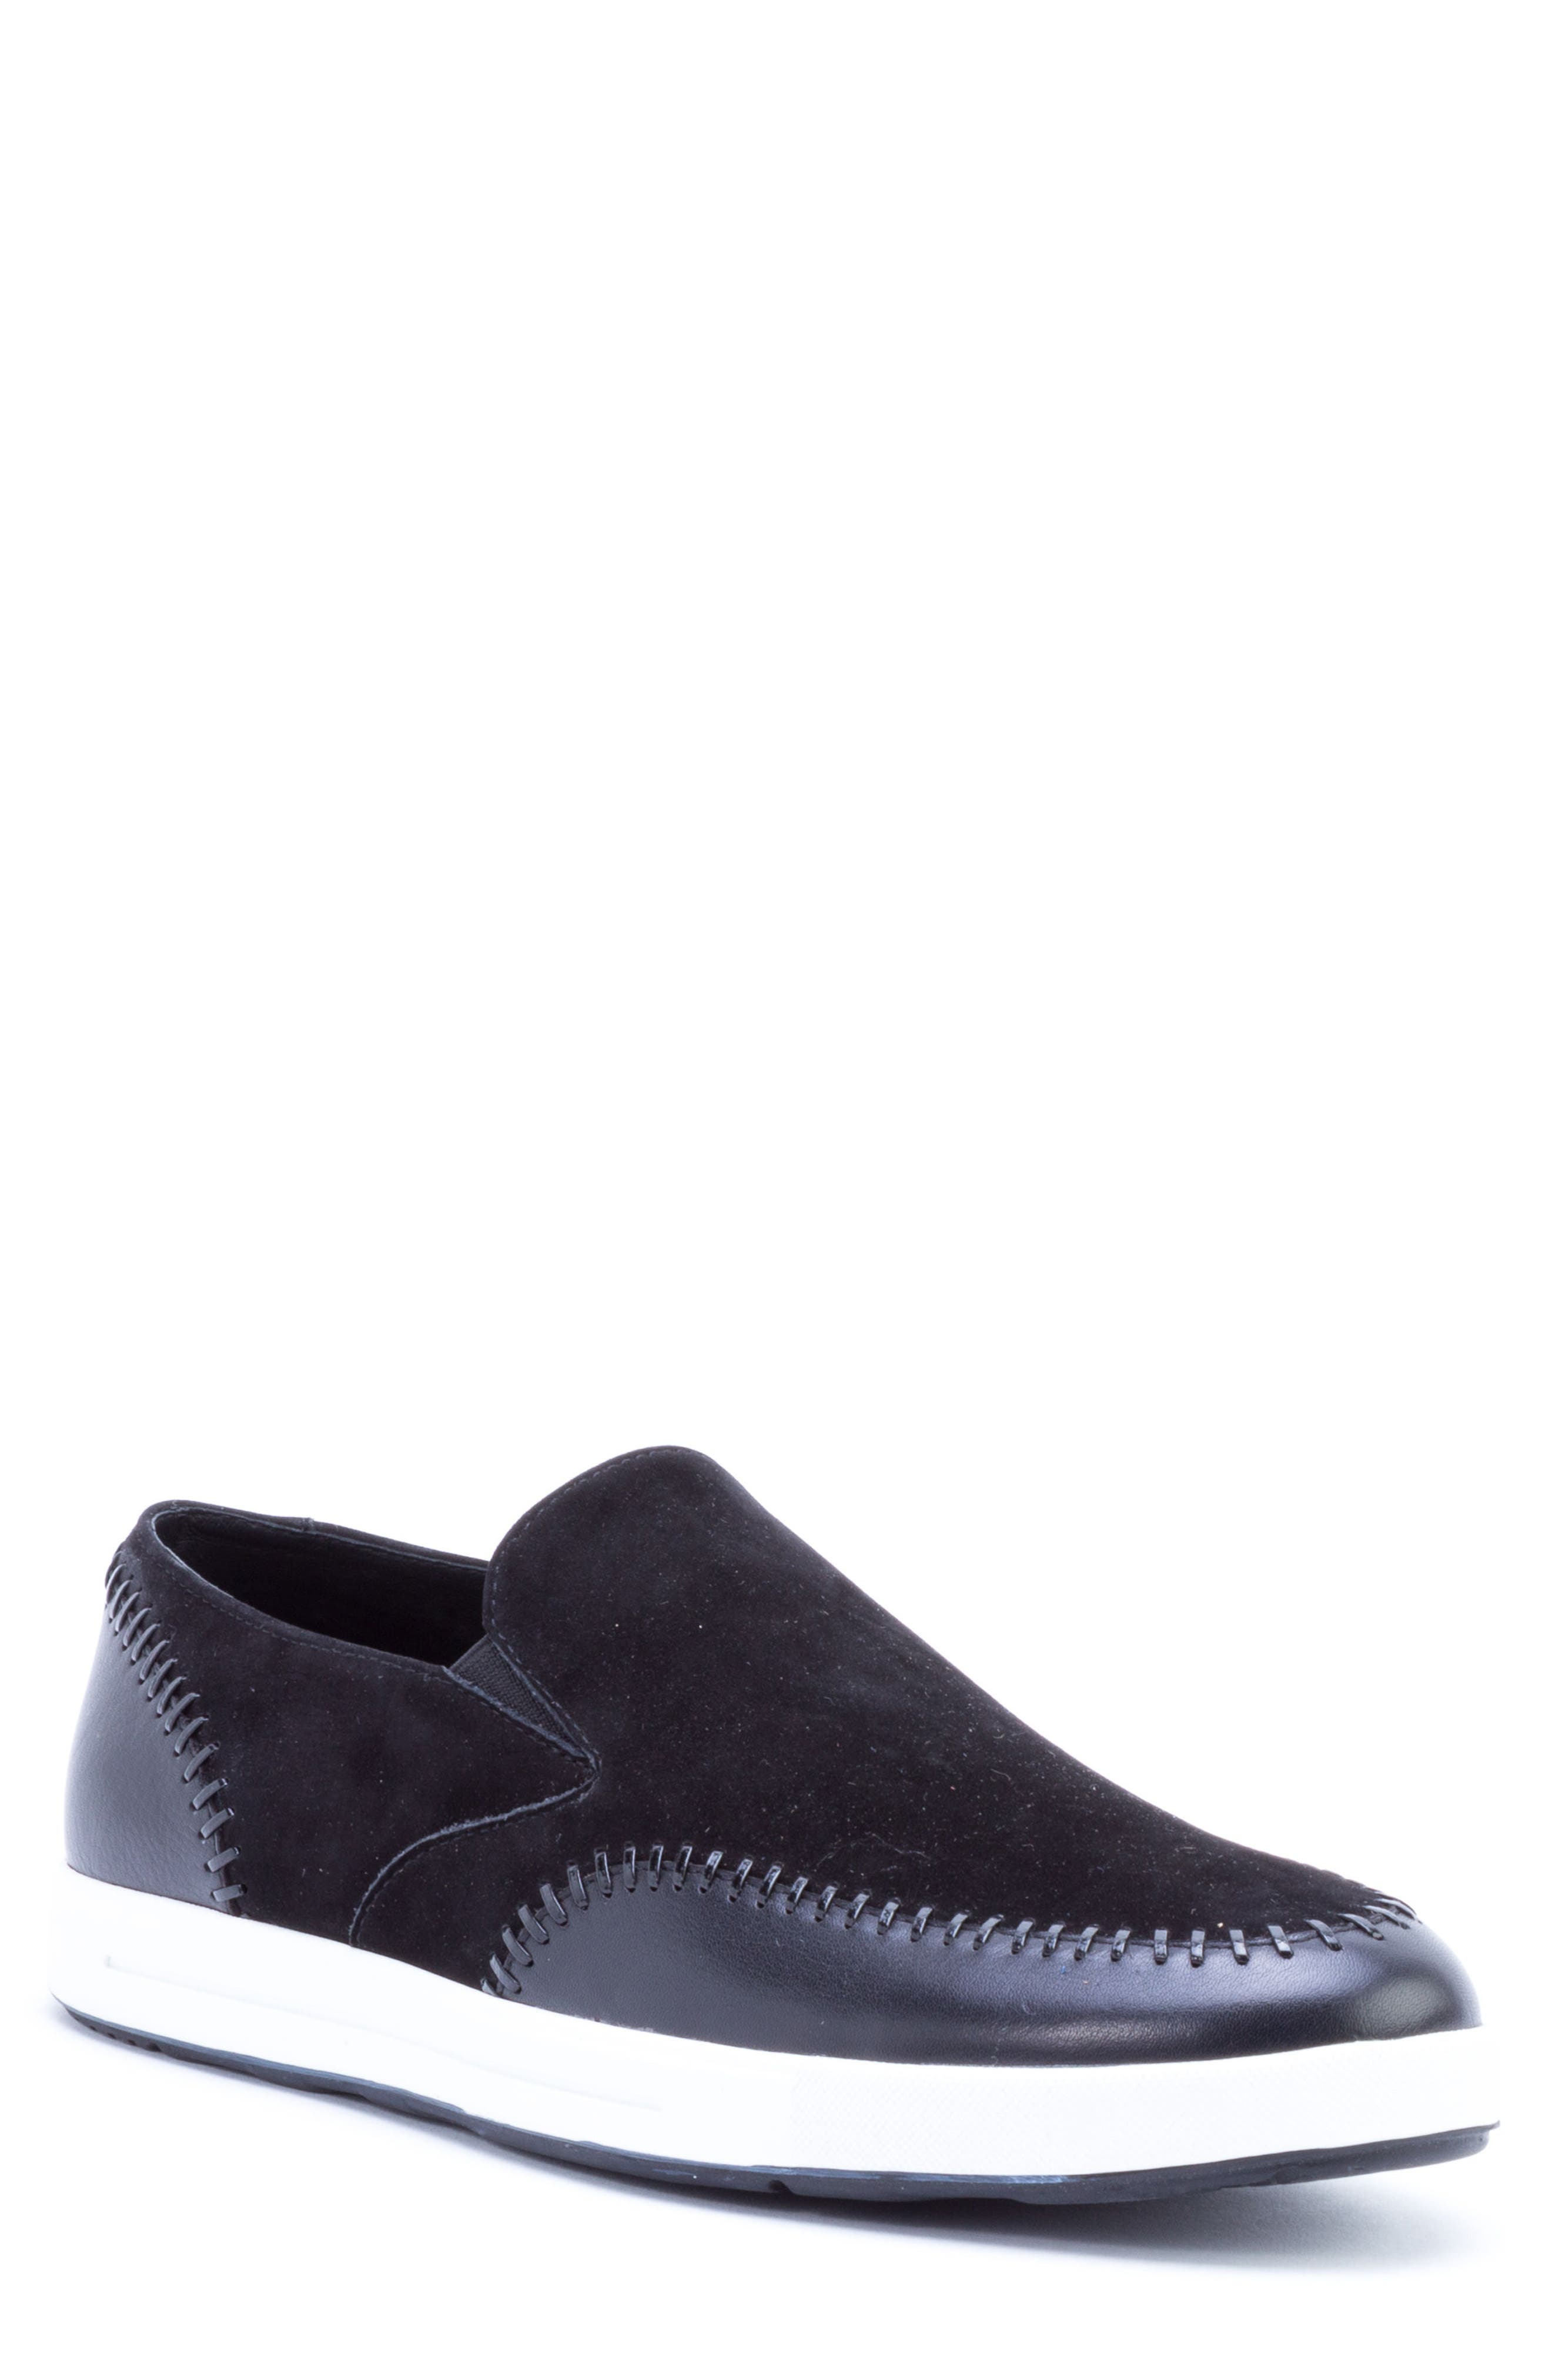 Caravaggio Whipstitched Slip-On Sneaker,                             Main thumbnail 1, color,                             BLACK SUEDE/ LEATHER